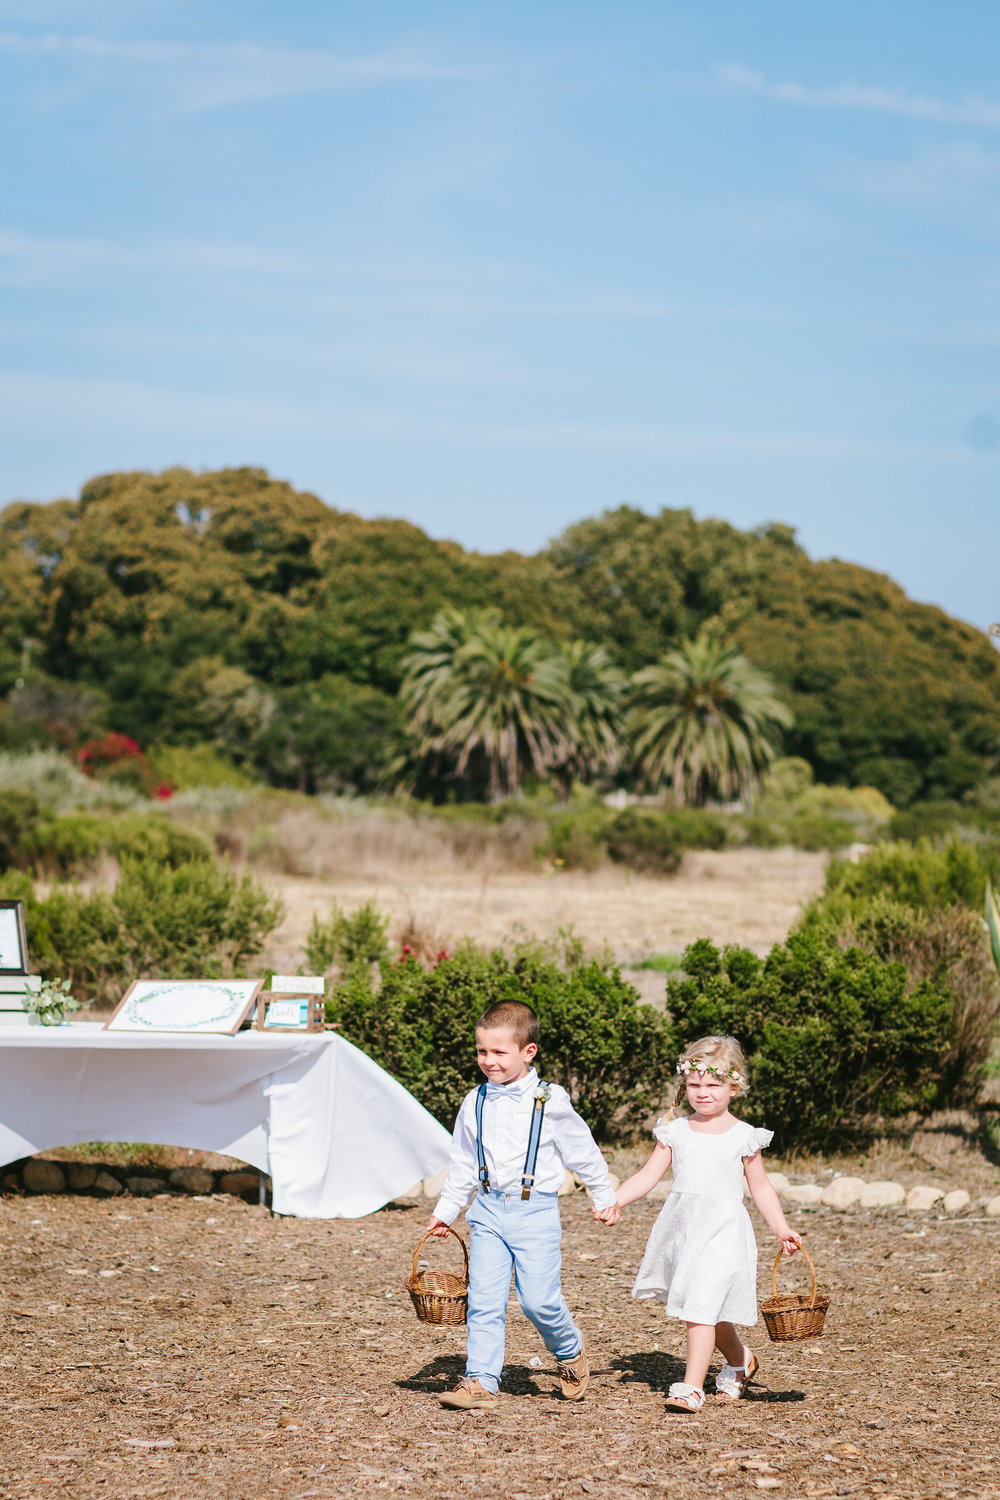 www.santabarbarawedding.com | Jodee Debes | Dos Pueblos Orchid Farm | Flower Girl and Ring Bearer